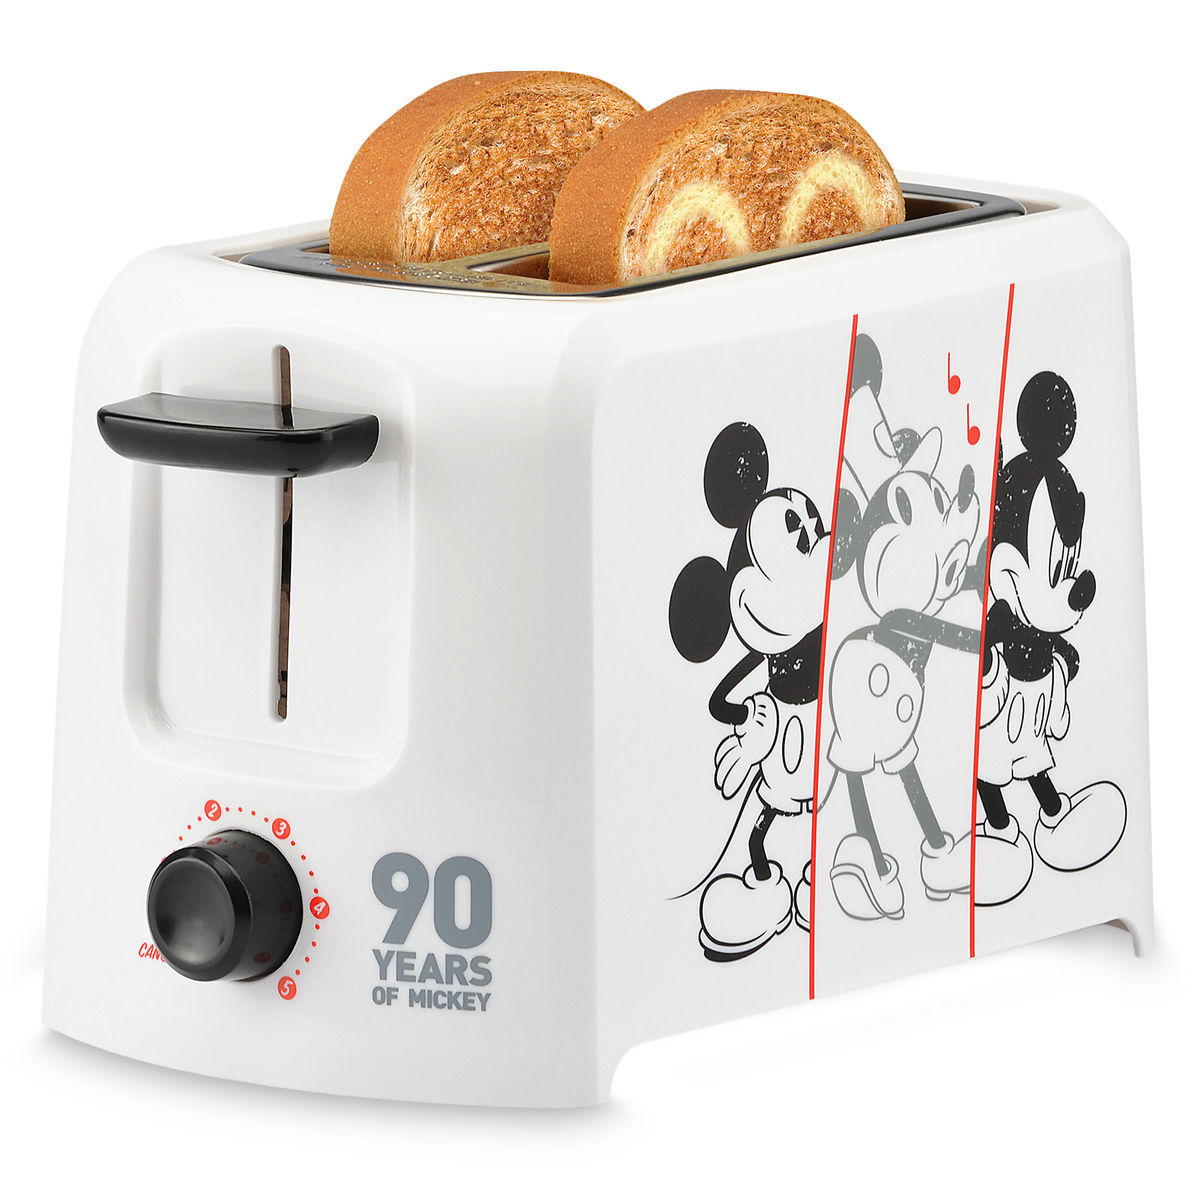 Make A Toast To The Mouse With The Most With This Mickey Mouse 90th  Anniversary Toaster ($24.95). The Two Slice Toaster Makes Mickey Themed  Toast And ...